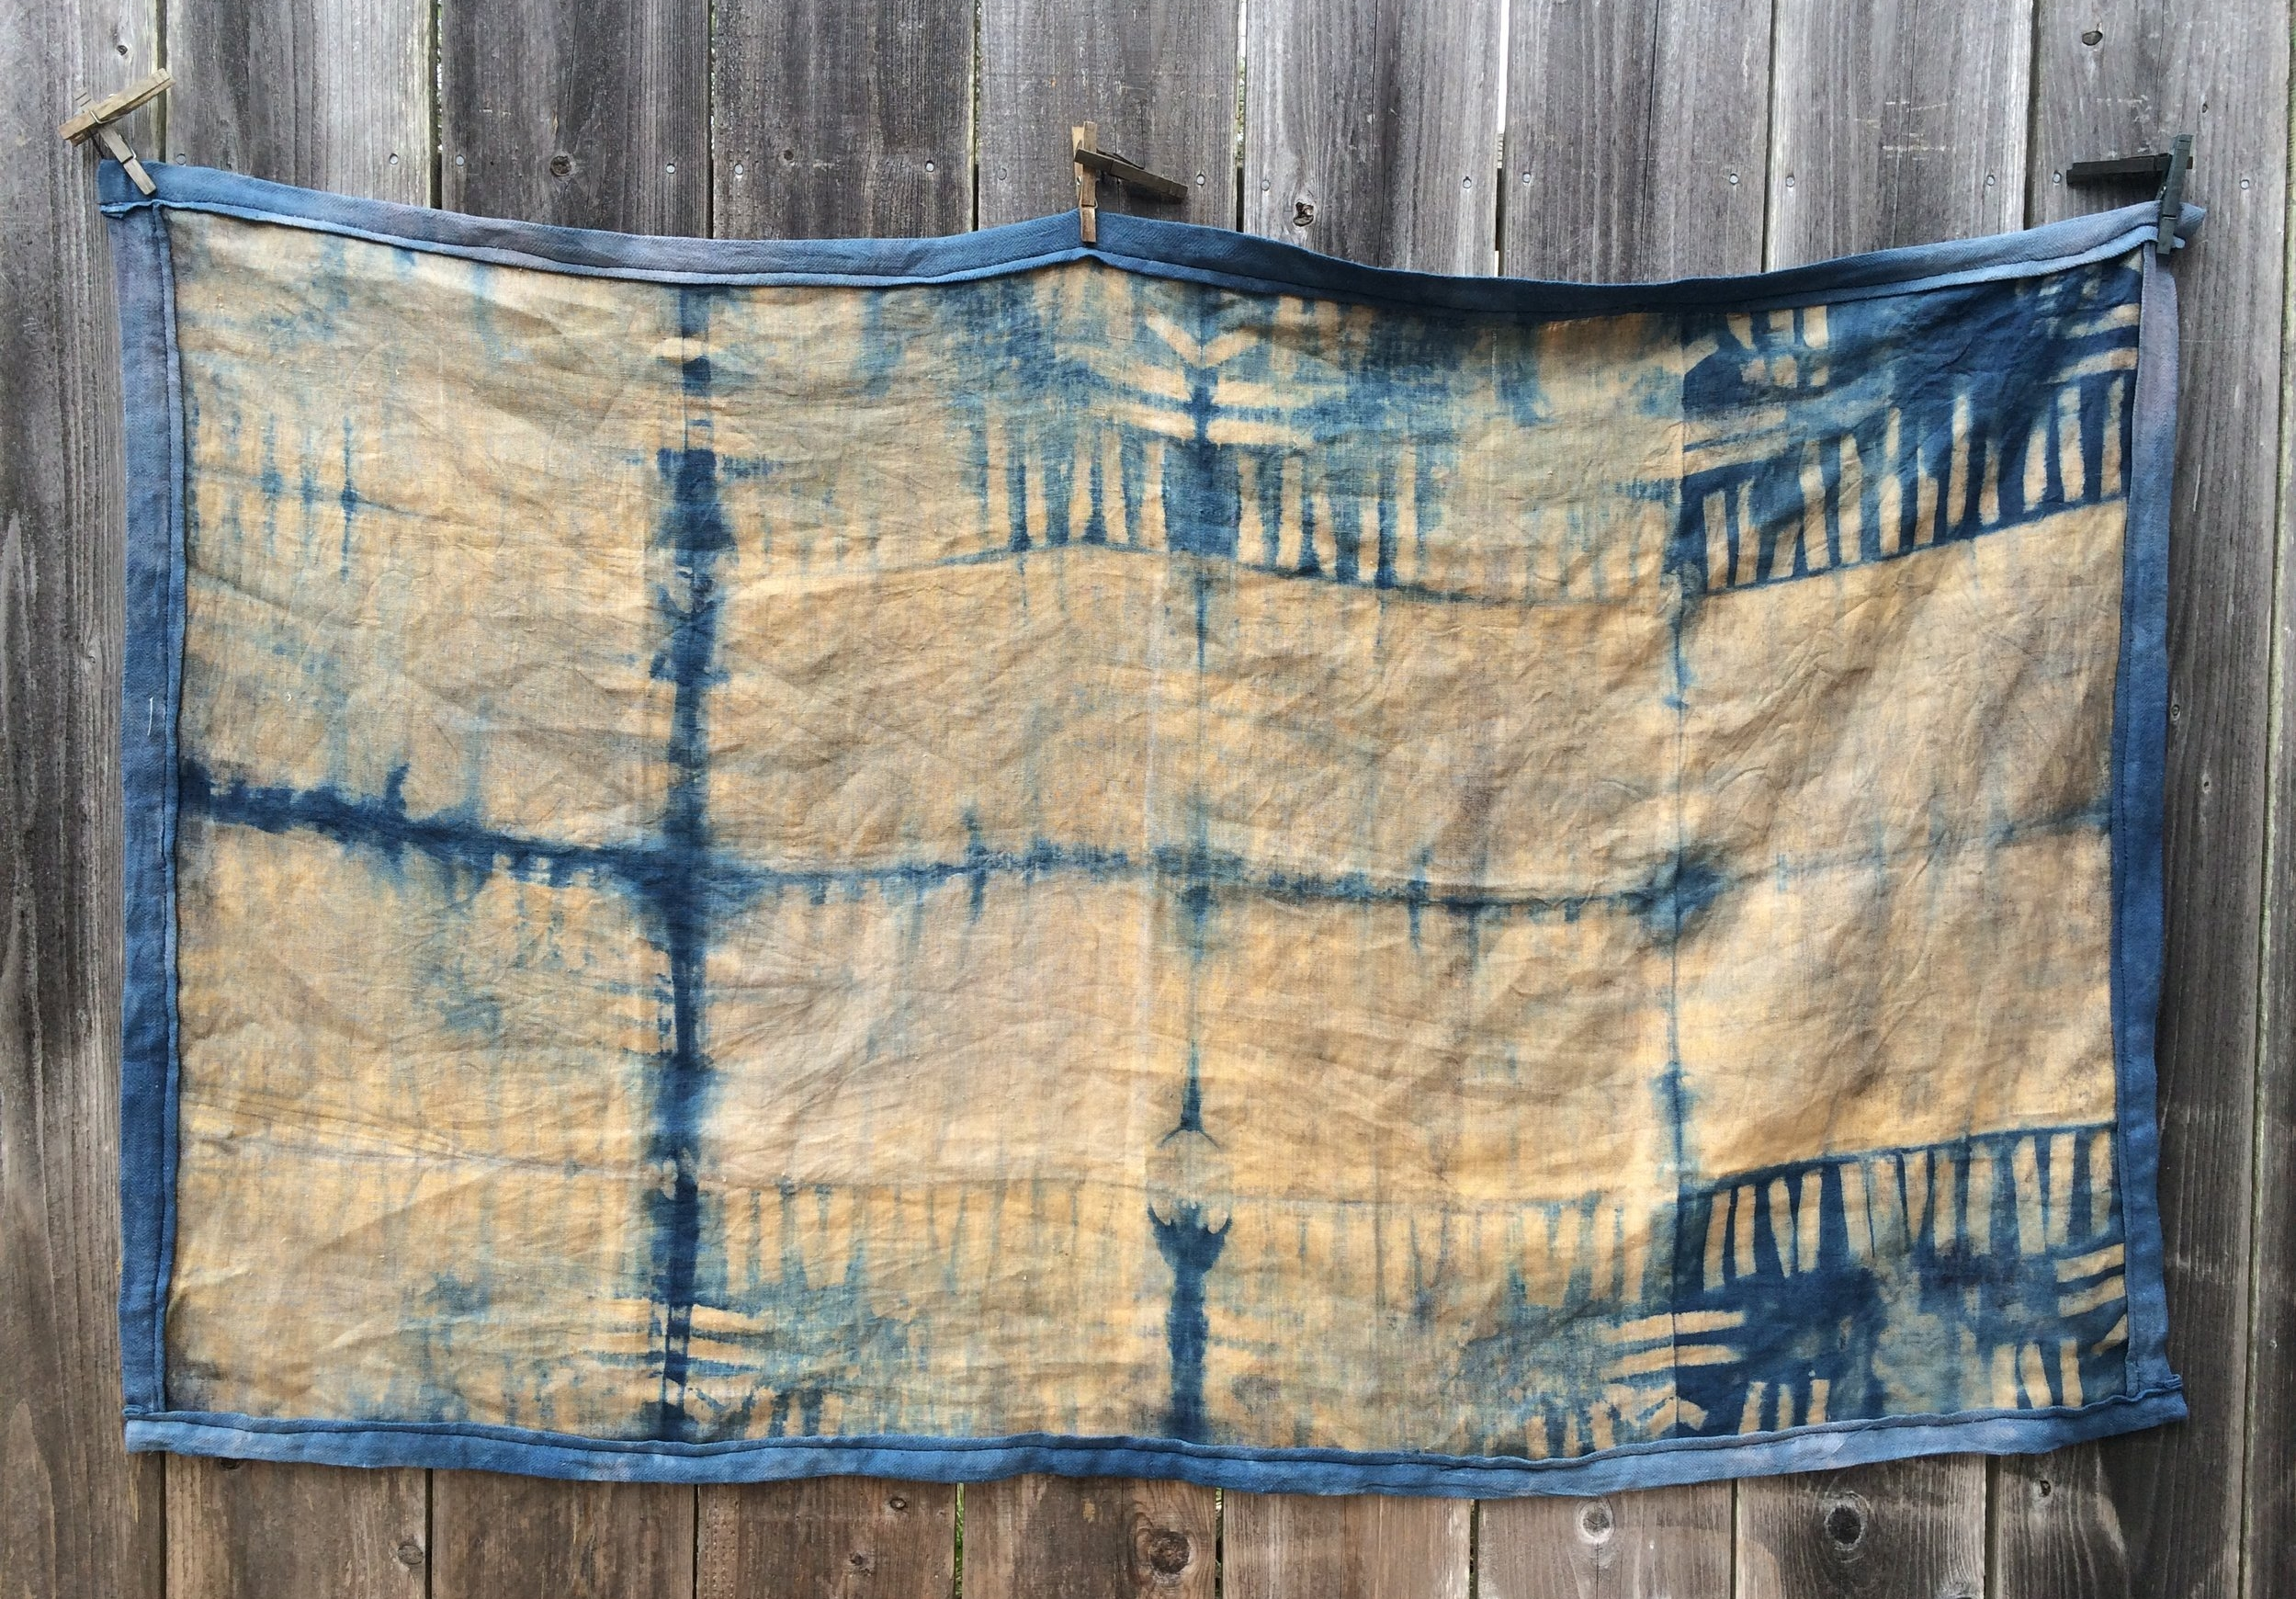 Table Runner, detail - Fennel over-dyed with Indigo on Linen